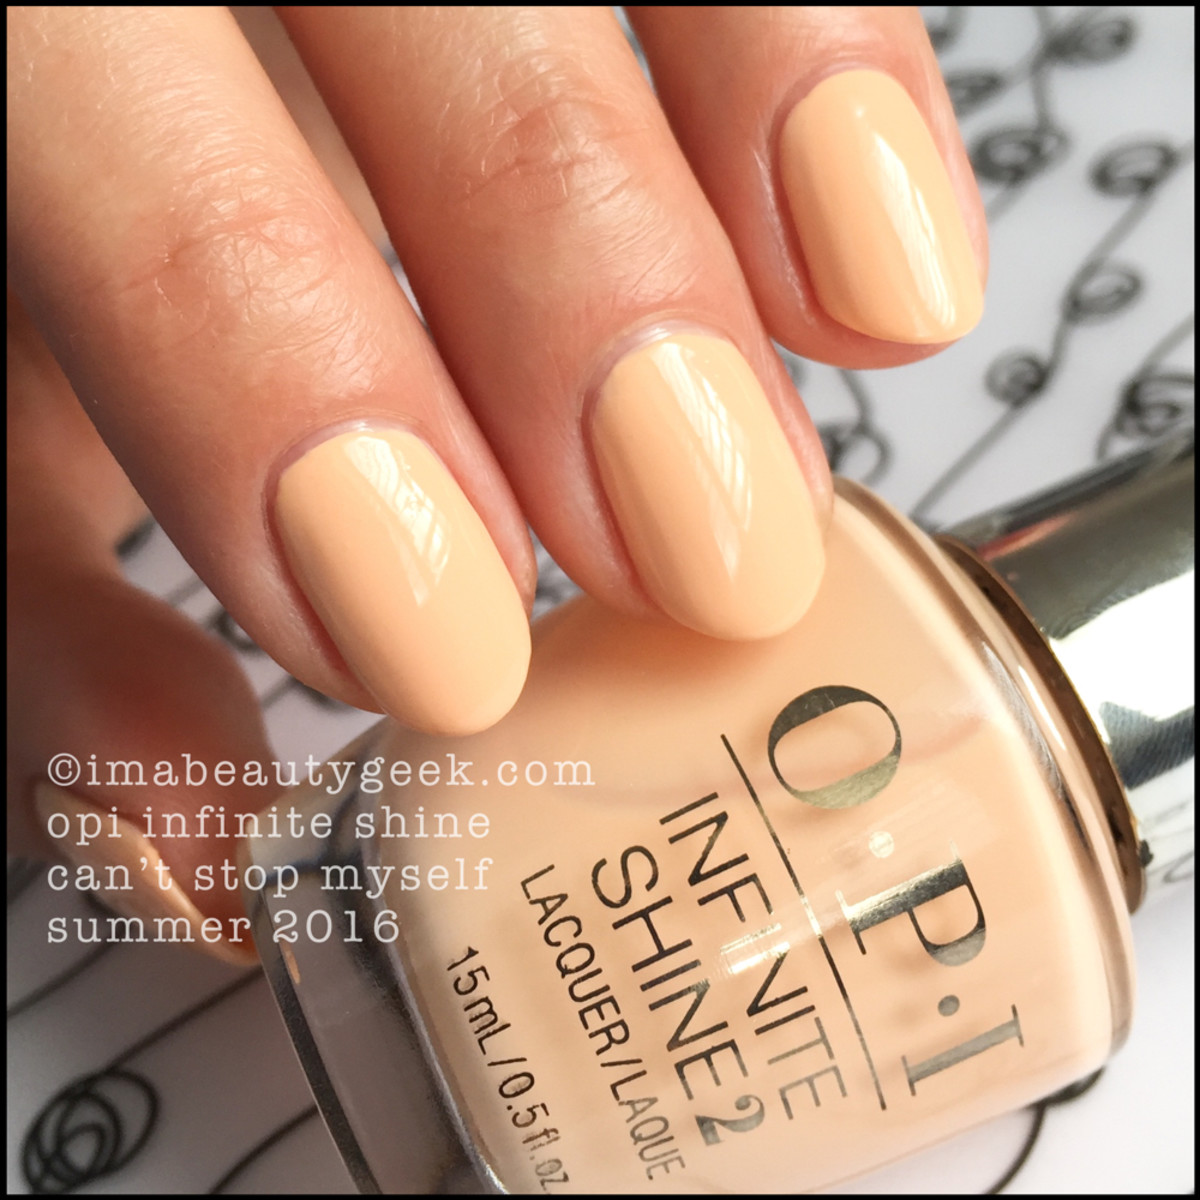 OPI Infinite Shine Can't Stop Myself_OPI Infinite Shine Summer 2016 Neutrals